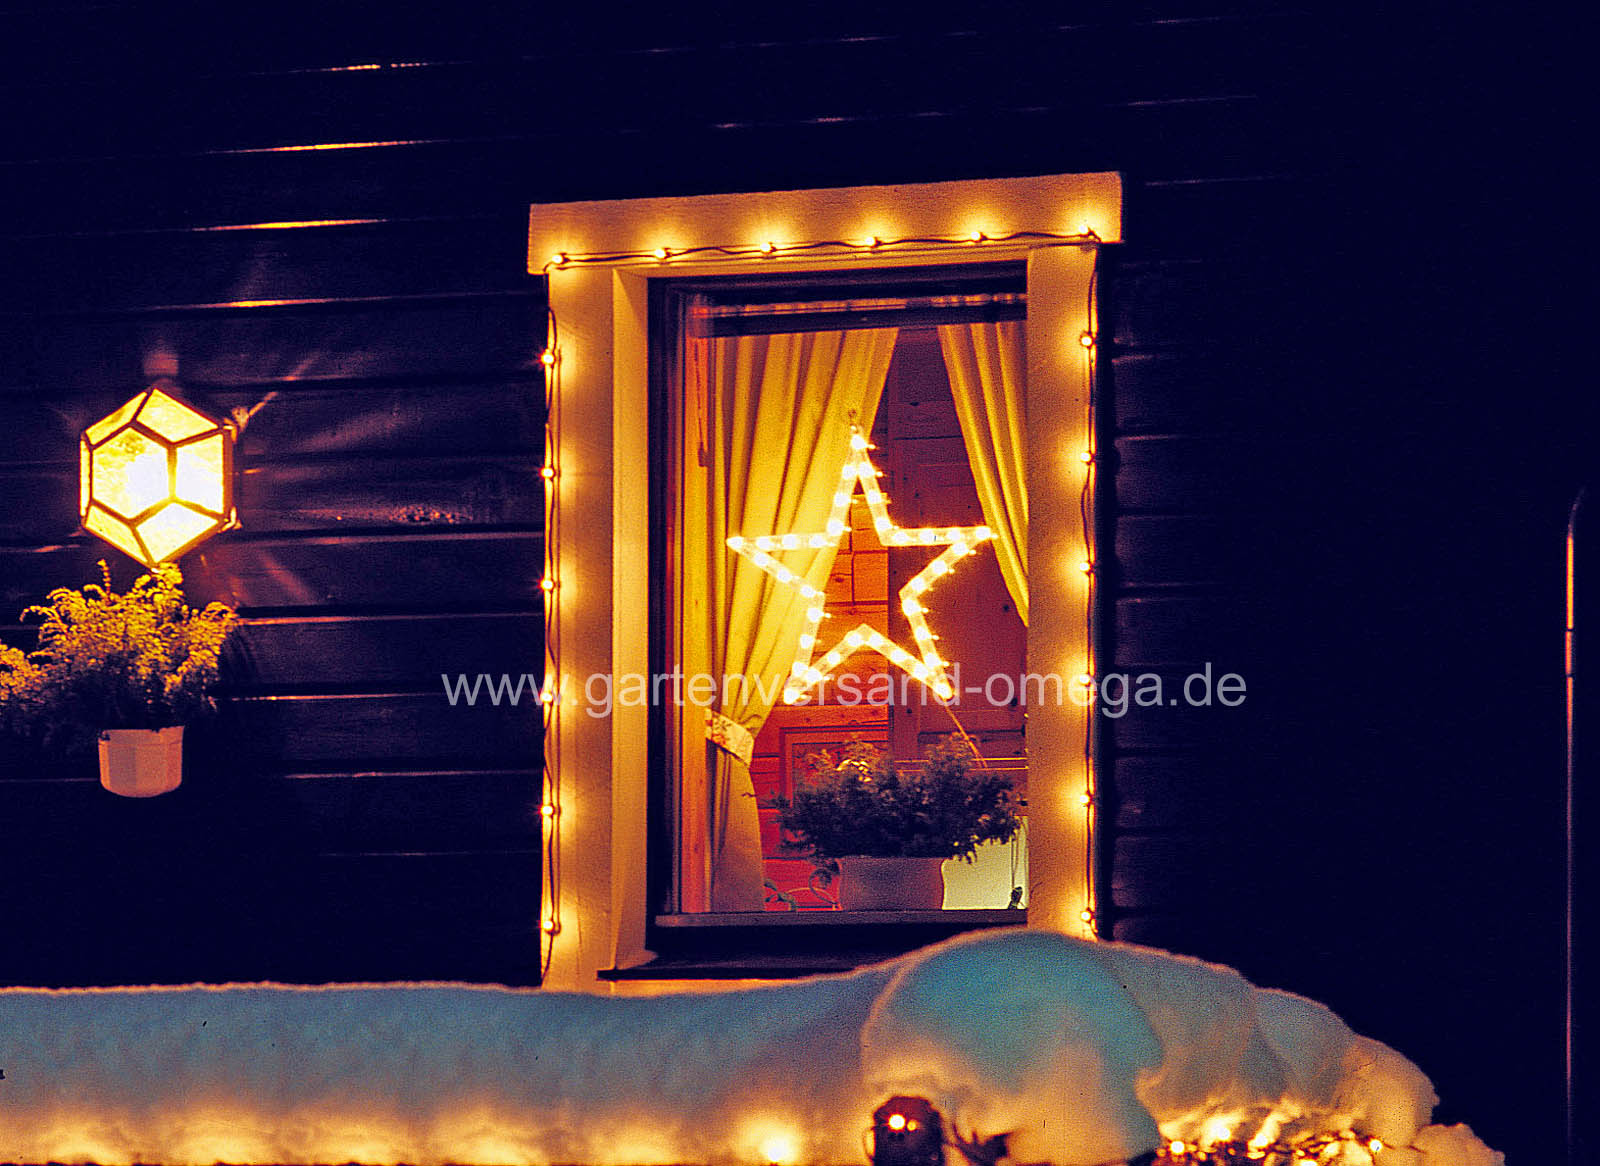 weihnachtliche fensterbilder fensterdekoration fensterbild weihnachtsdekoration preiswerte. Black Bedroom Furniture Sets. Home Design Ideas